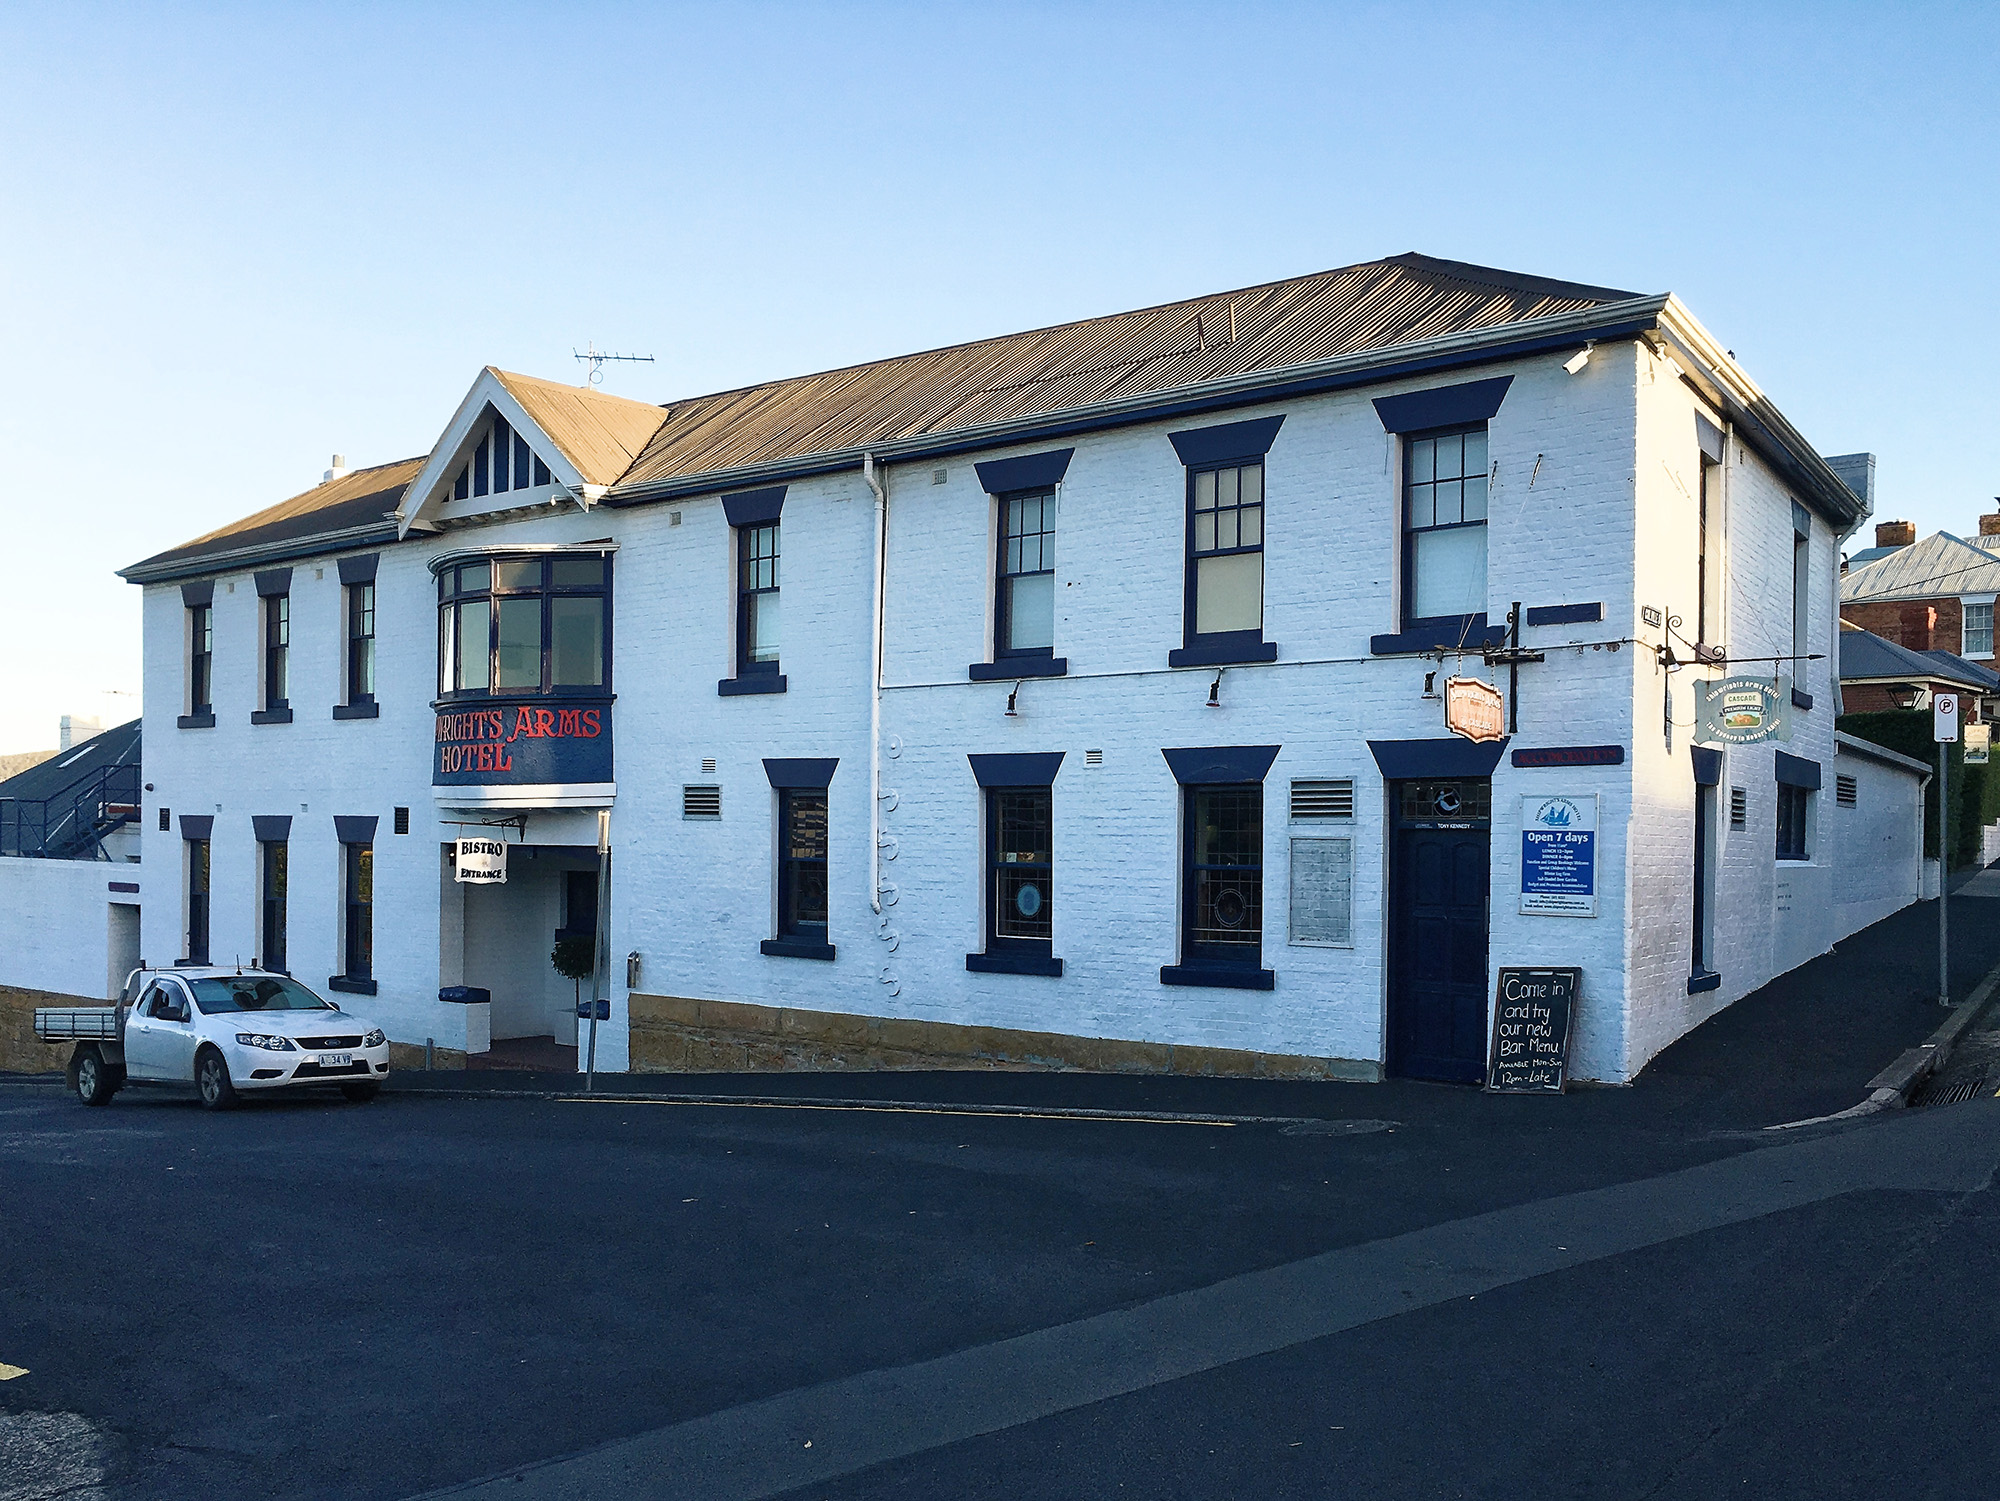 "<p style=""color:white"">Shipwrights Arms Hotel</p>"